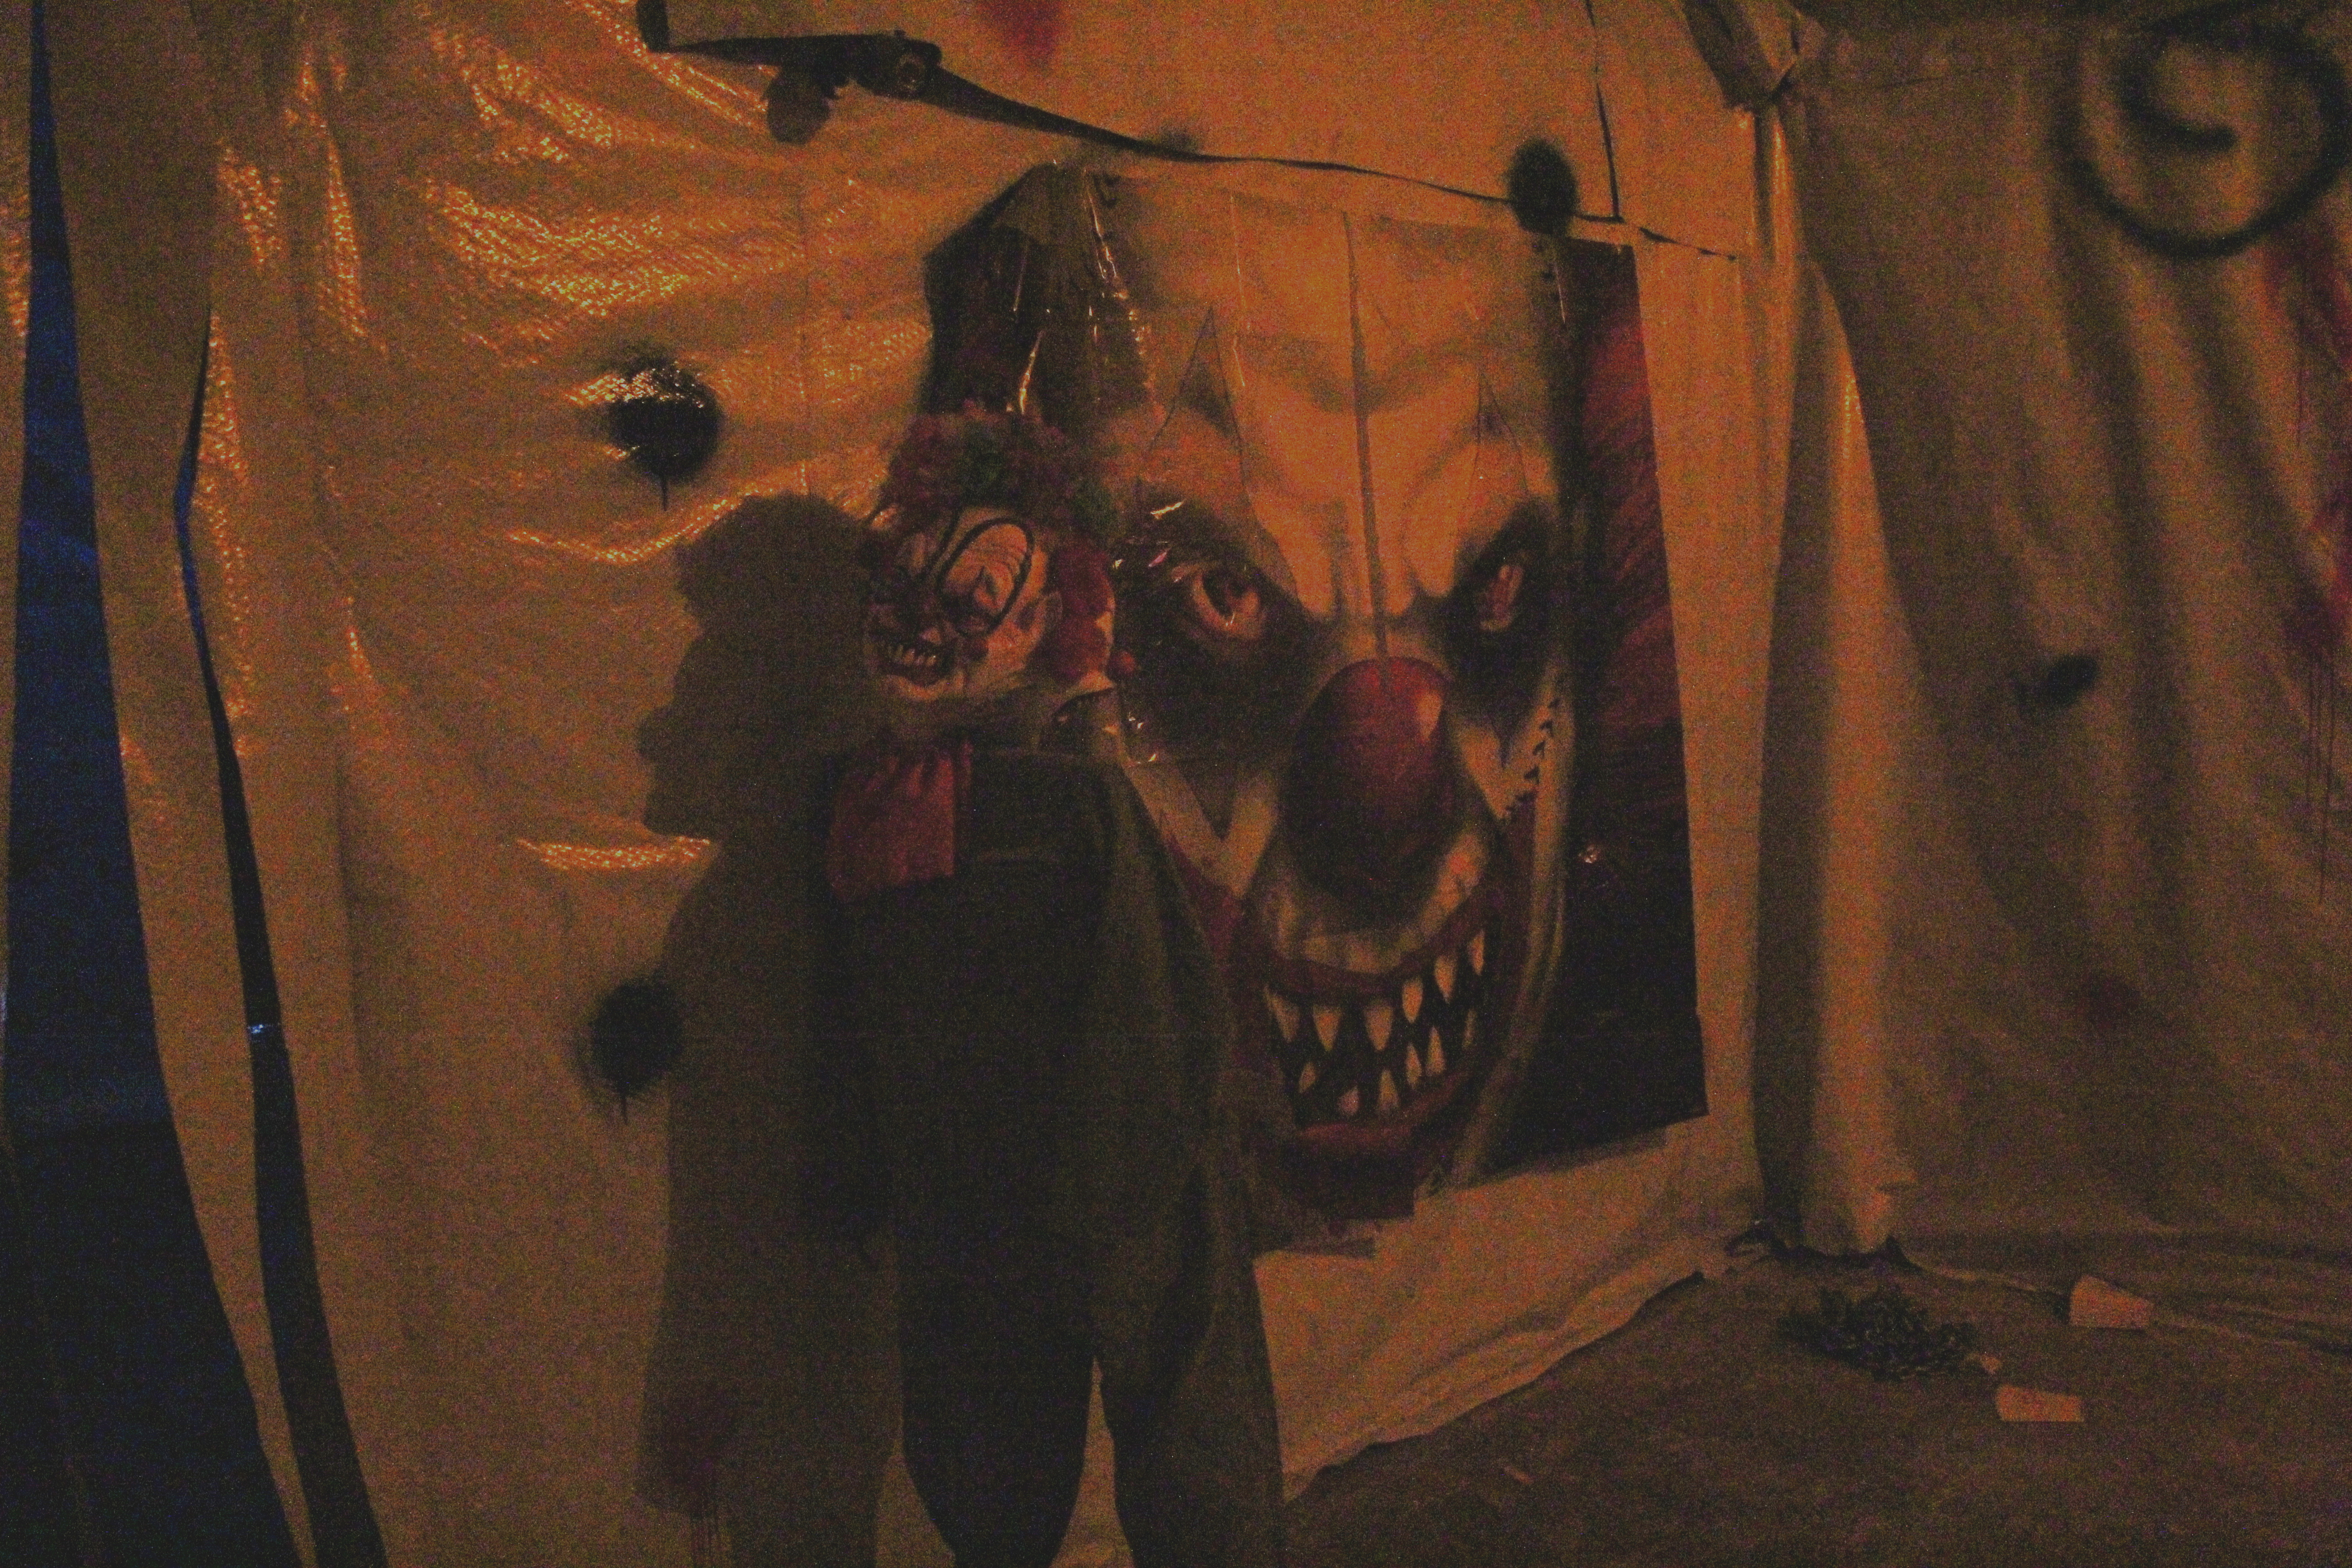 Scare Gallery: Haunted House 2014